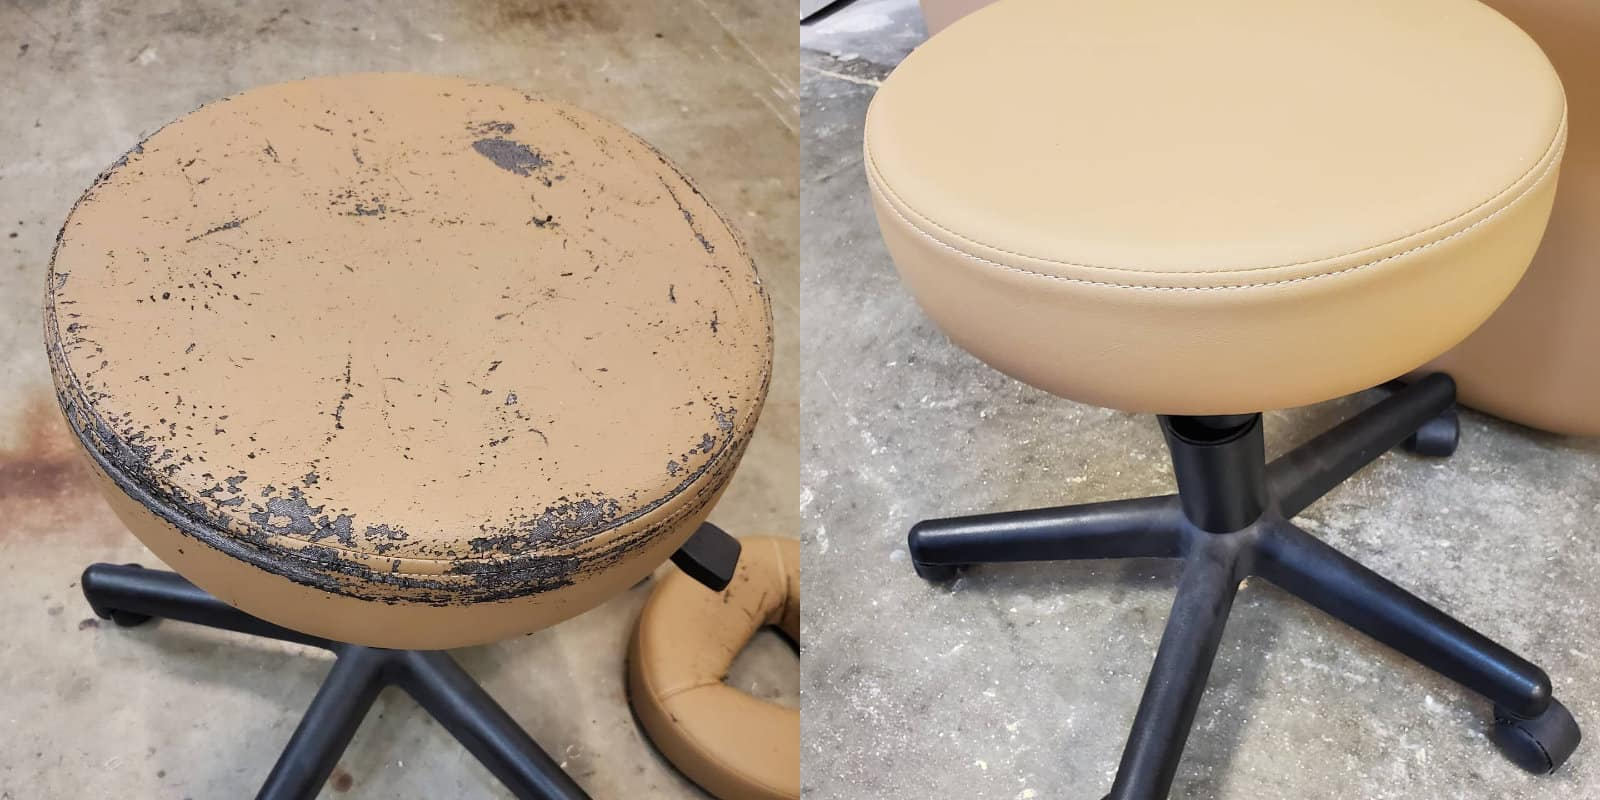 Reupholstered stool